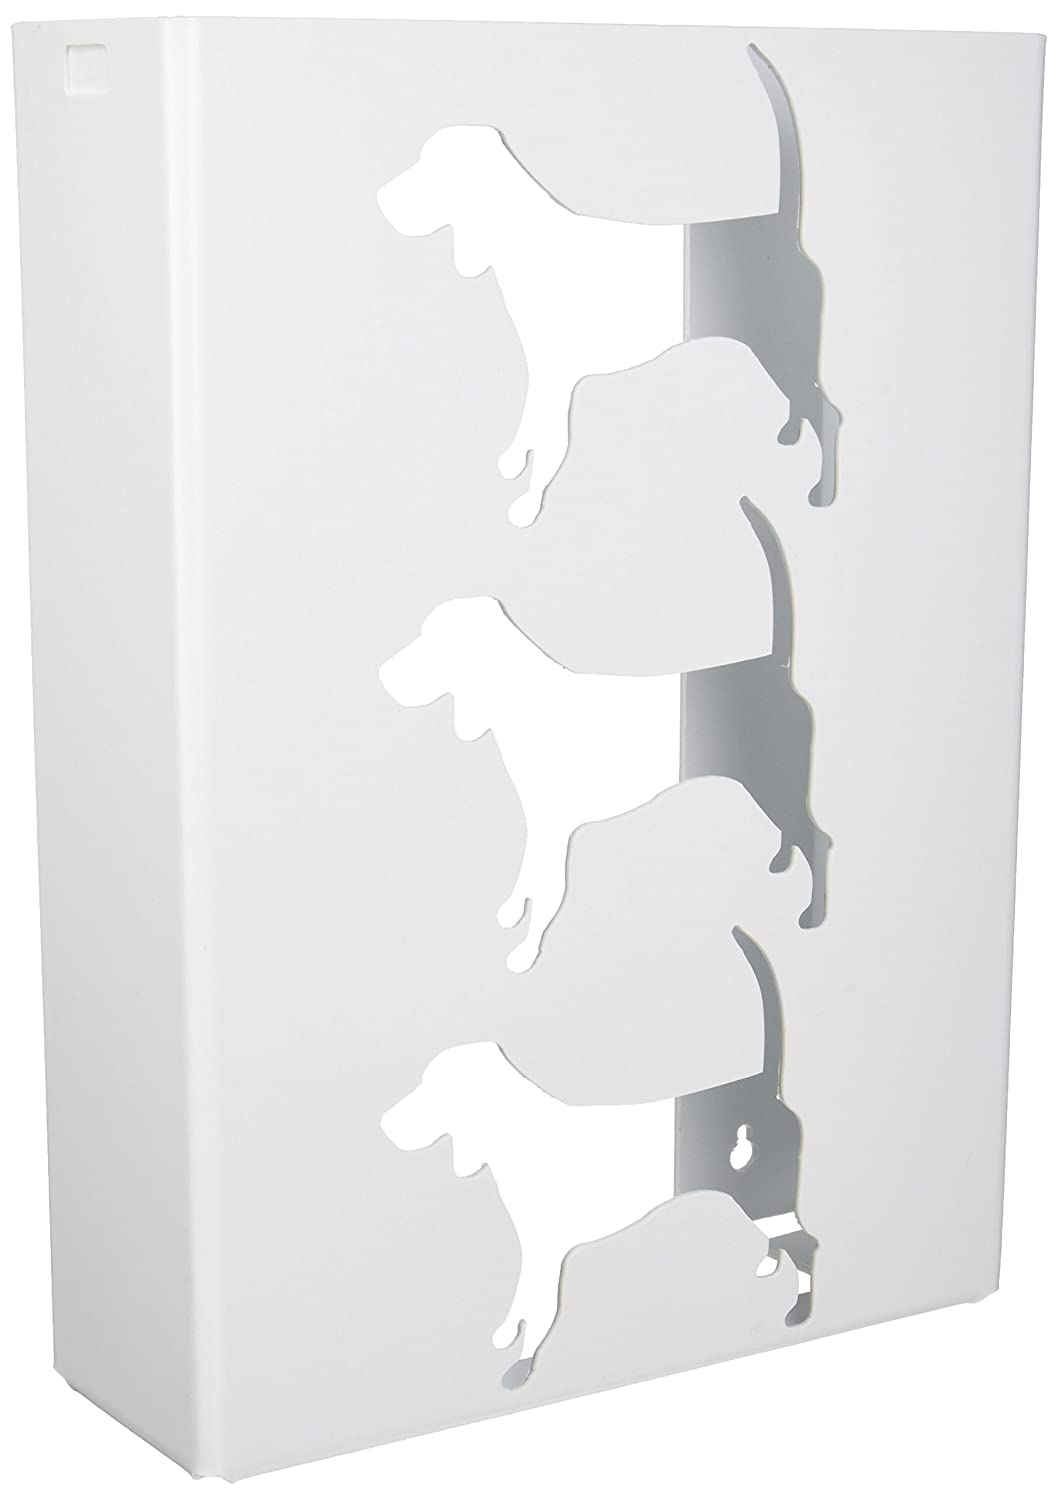 TrippNT 50772 Priced Right Triple Glove Box Holder with Dog, 11' Width x 15' Height x 4' Depth 11 Width x 15 Height x 4 Depth